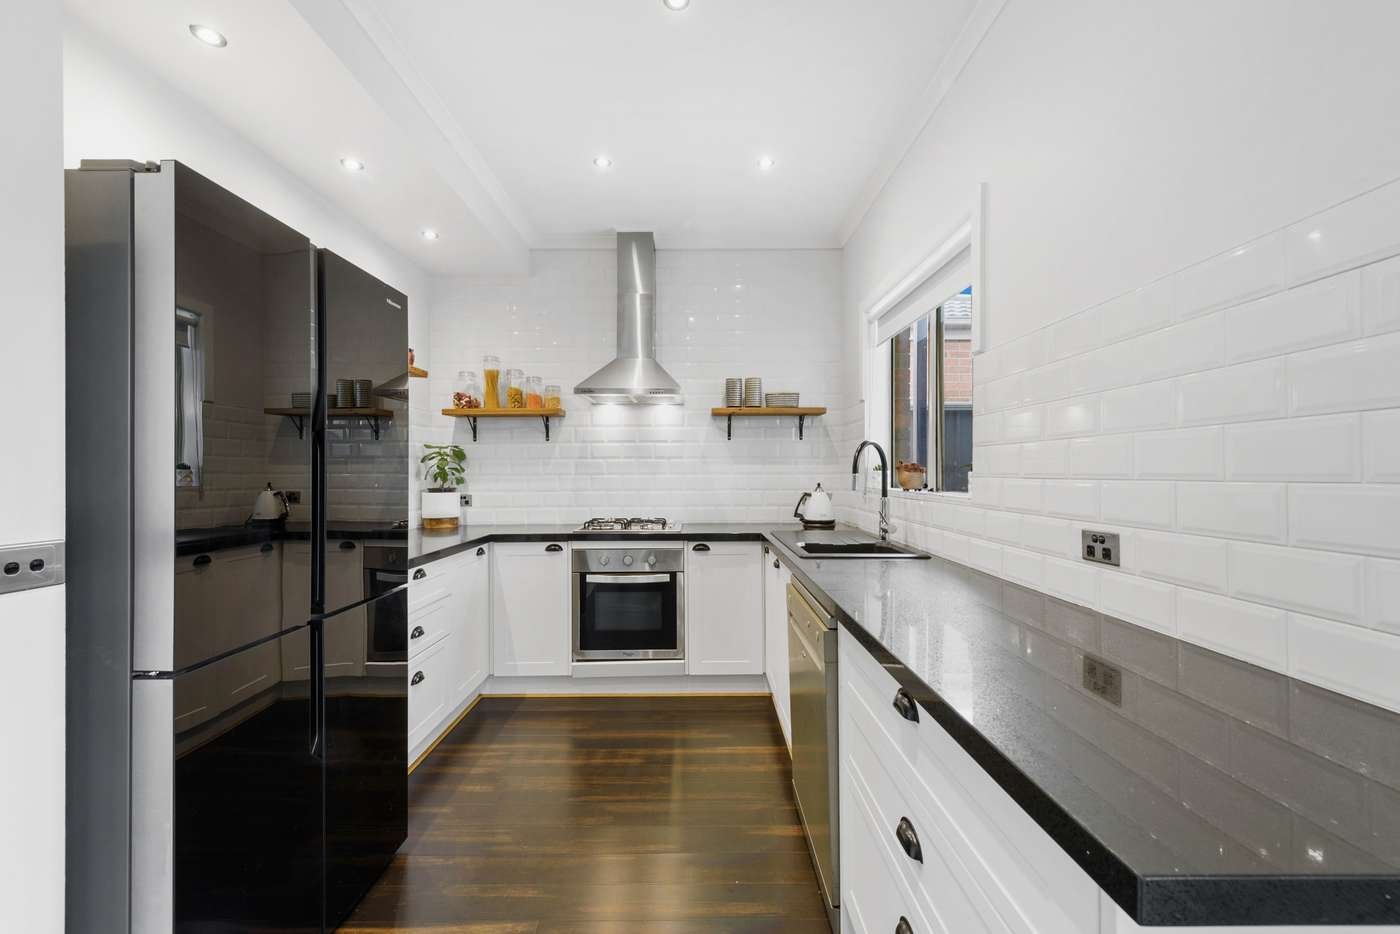 Main view of Homely house listing, 37 The Glades, Taylors Hill VIC 3037